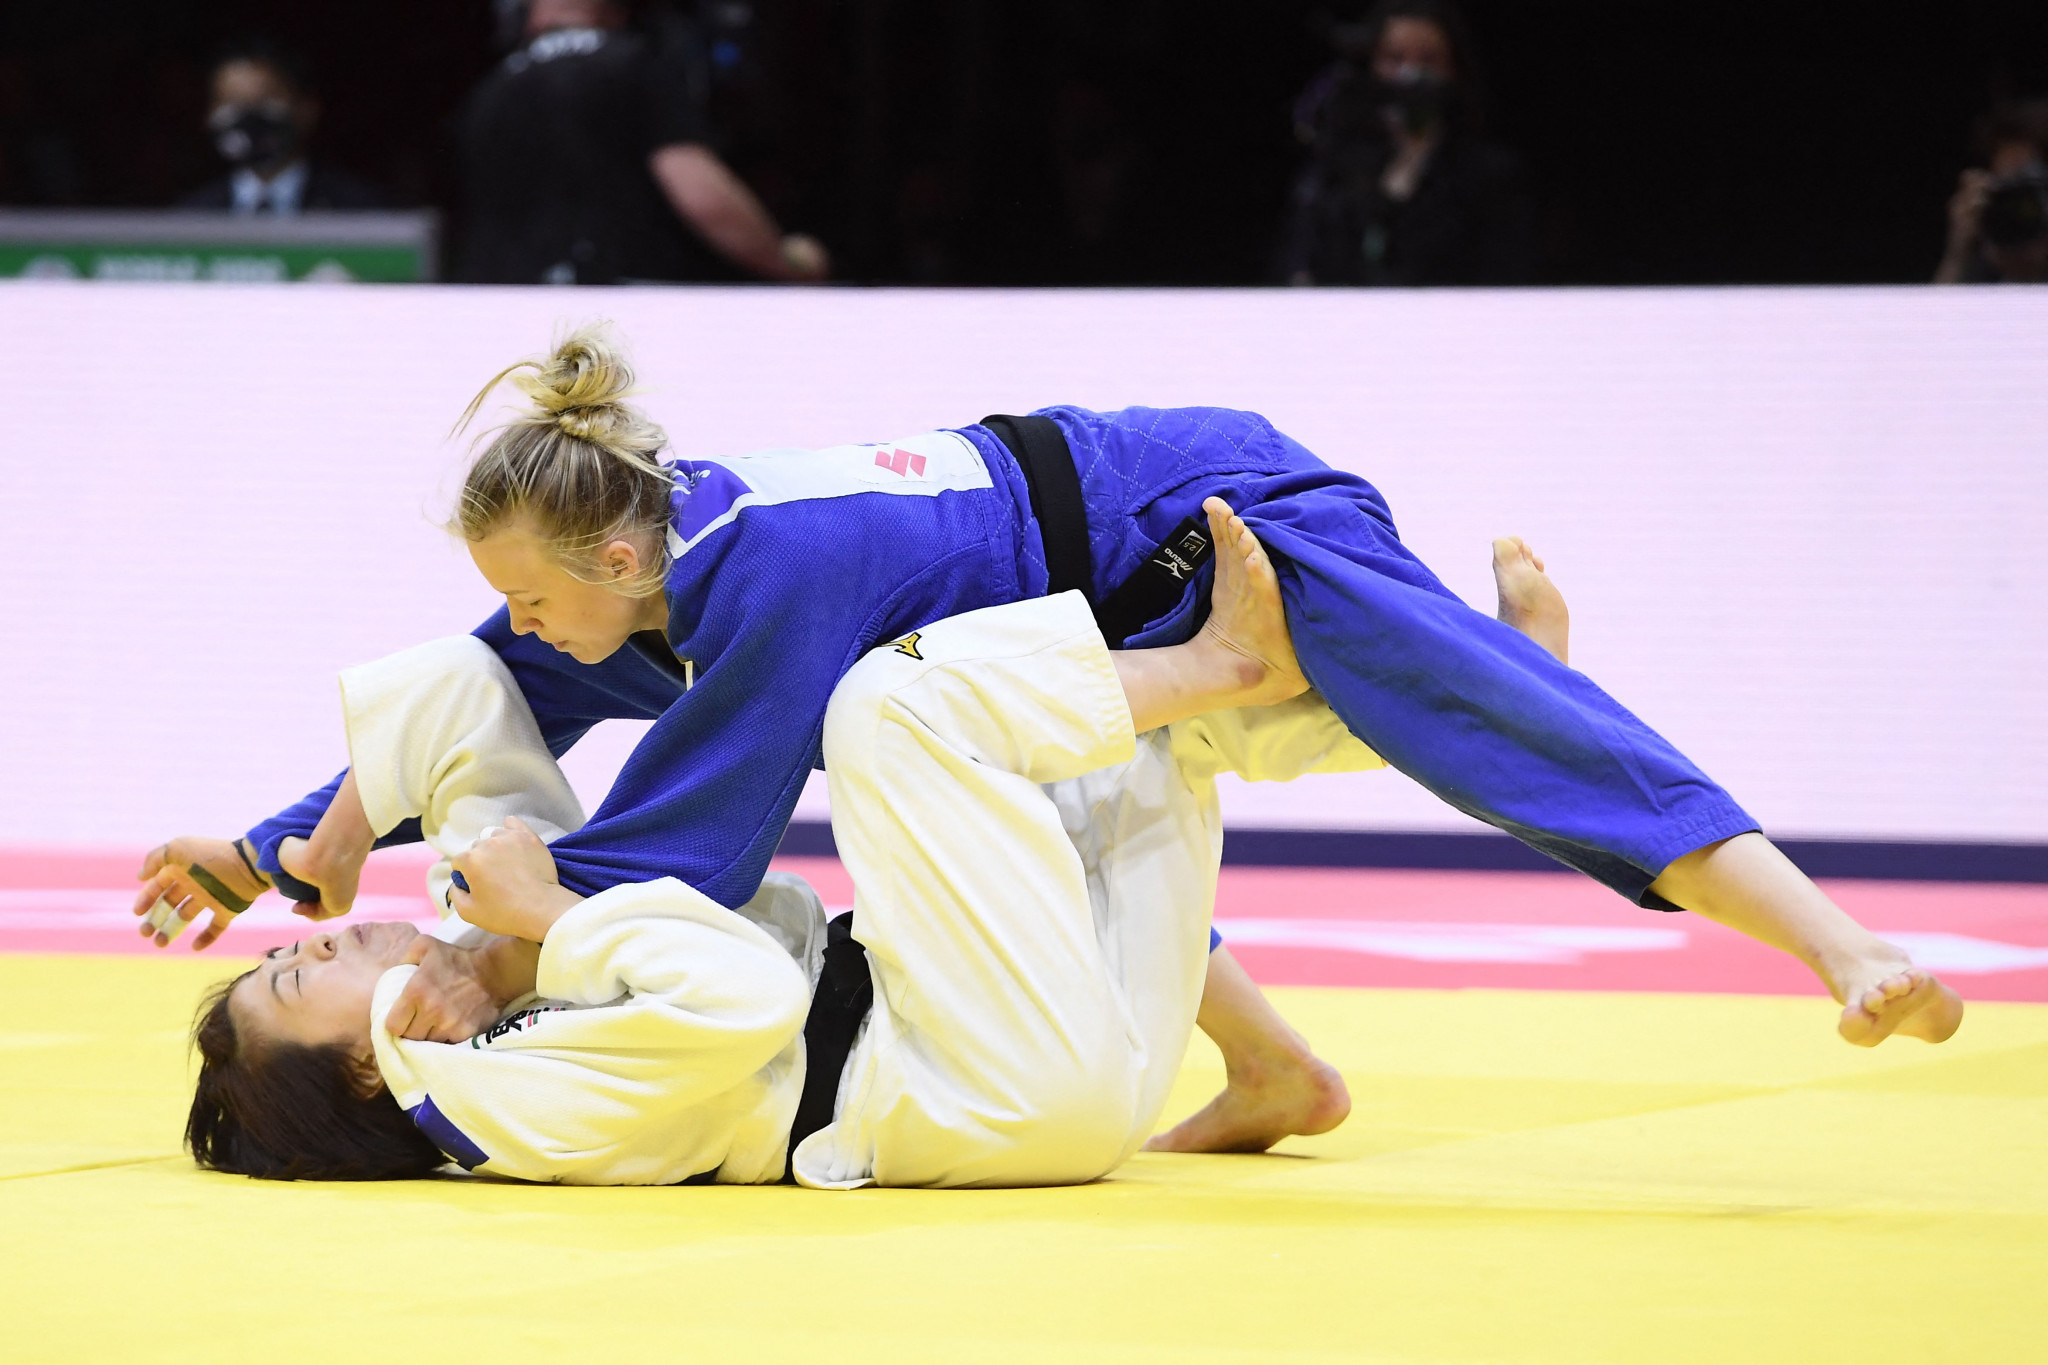 Jessica Klimkait takes control of her gold-medal bout against Momo Tamaoki ©Getty Images